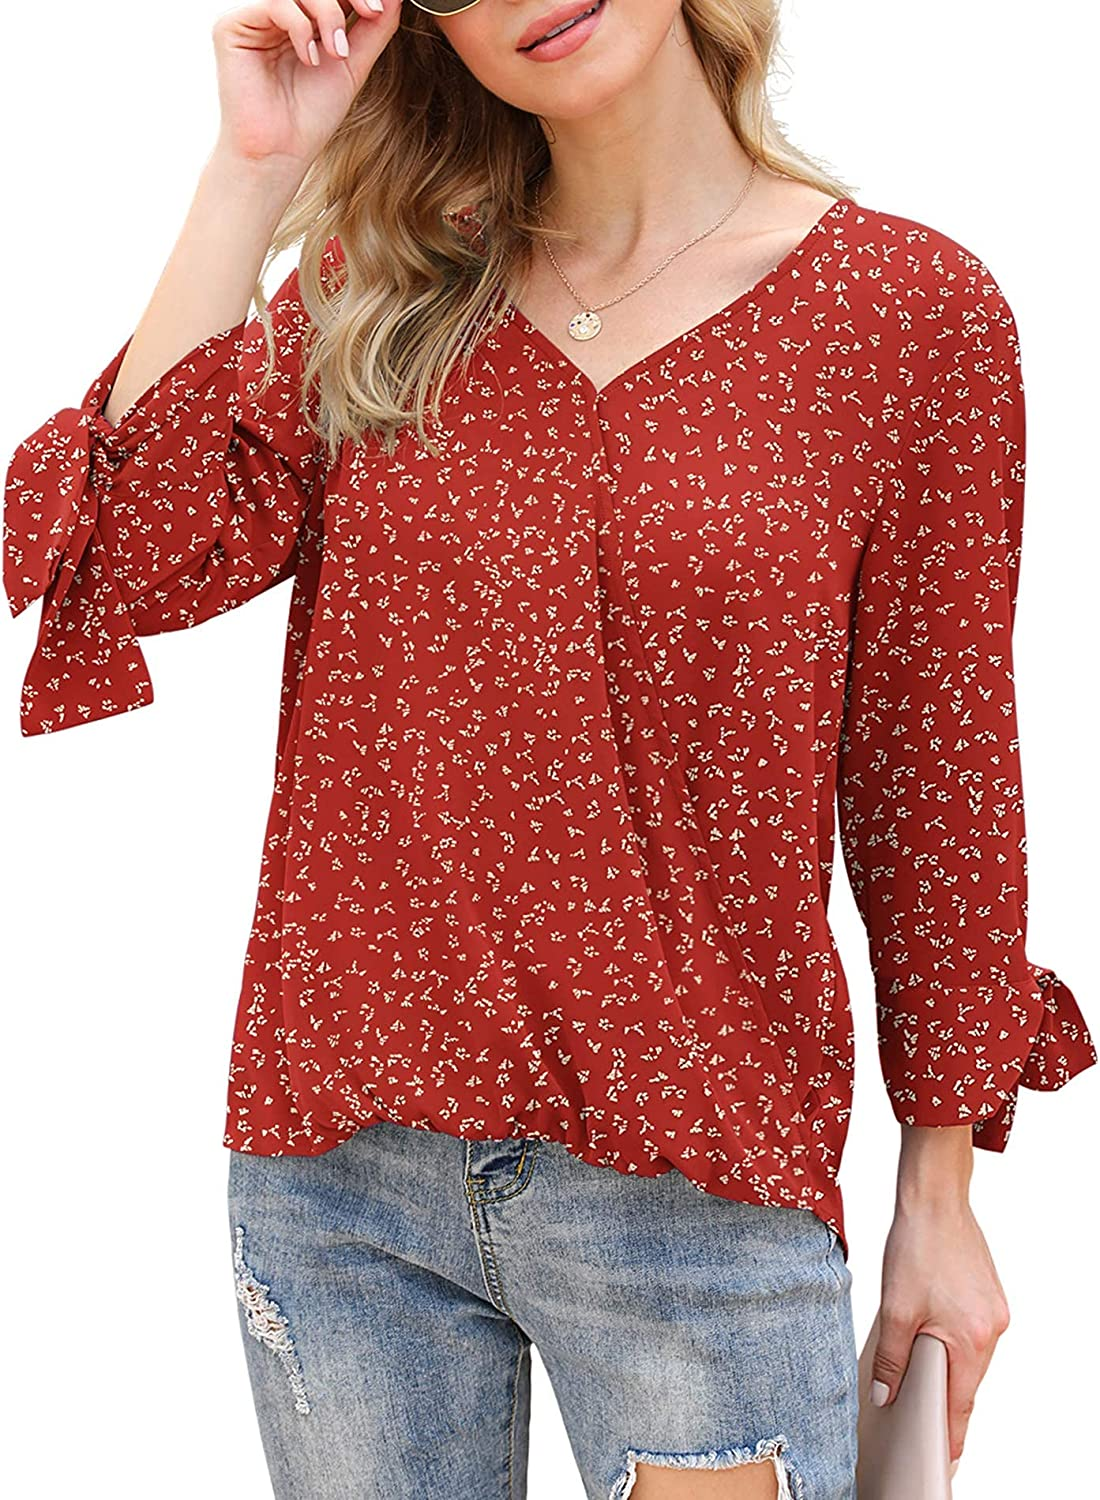 LILBETTER Womens Loose Casual Tie Sleeve V Neck Chiffon Blouses Tops Shirts